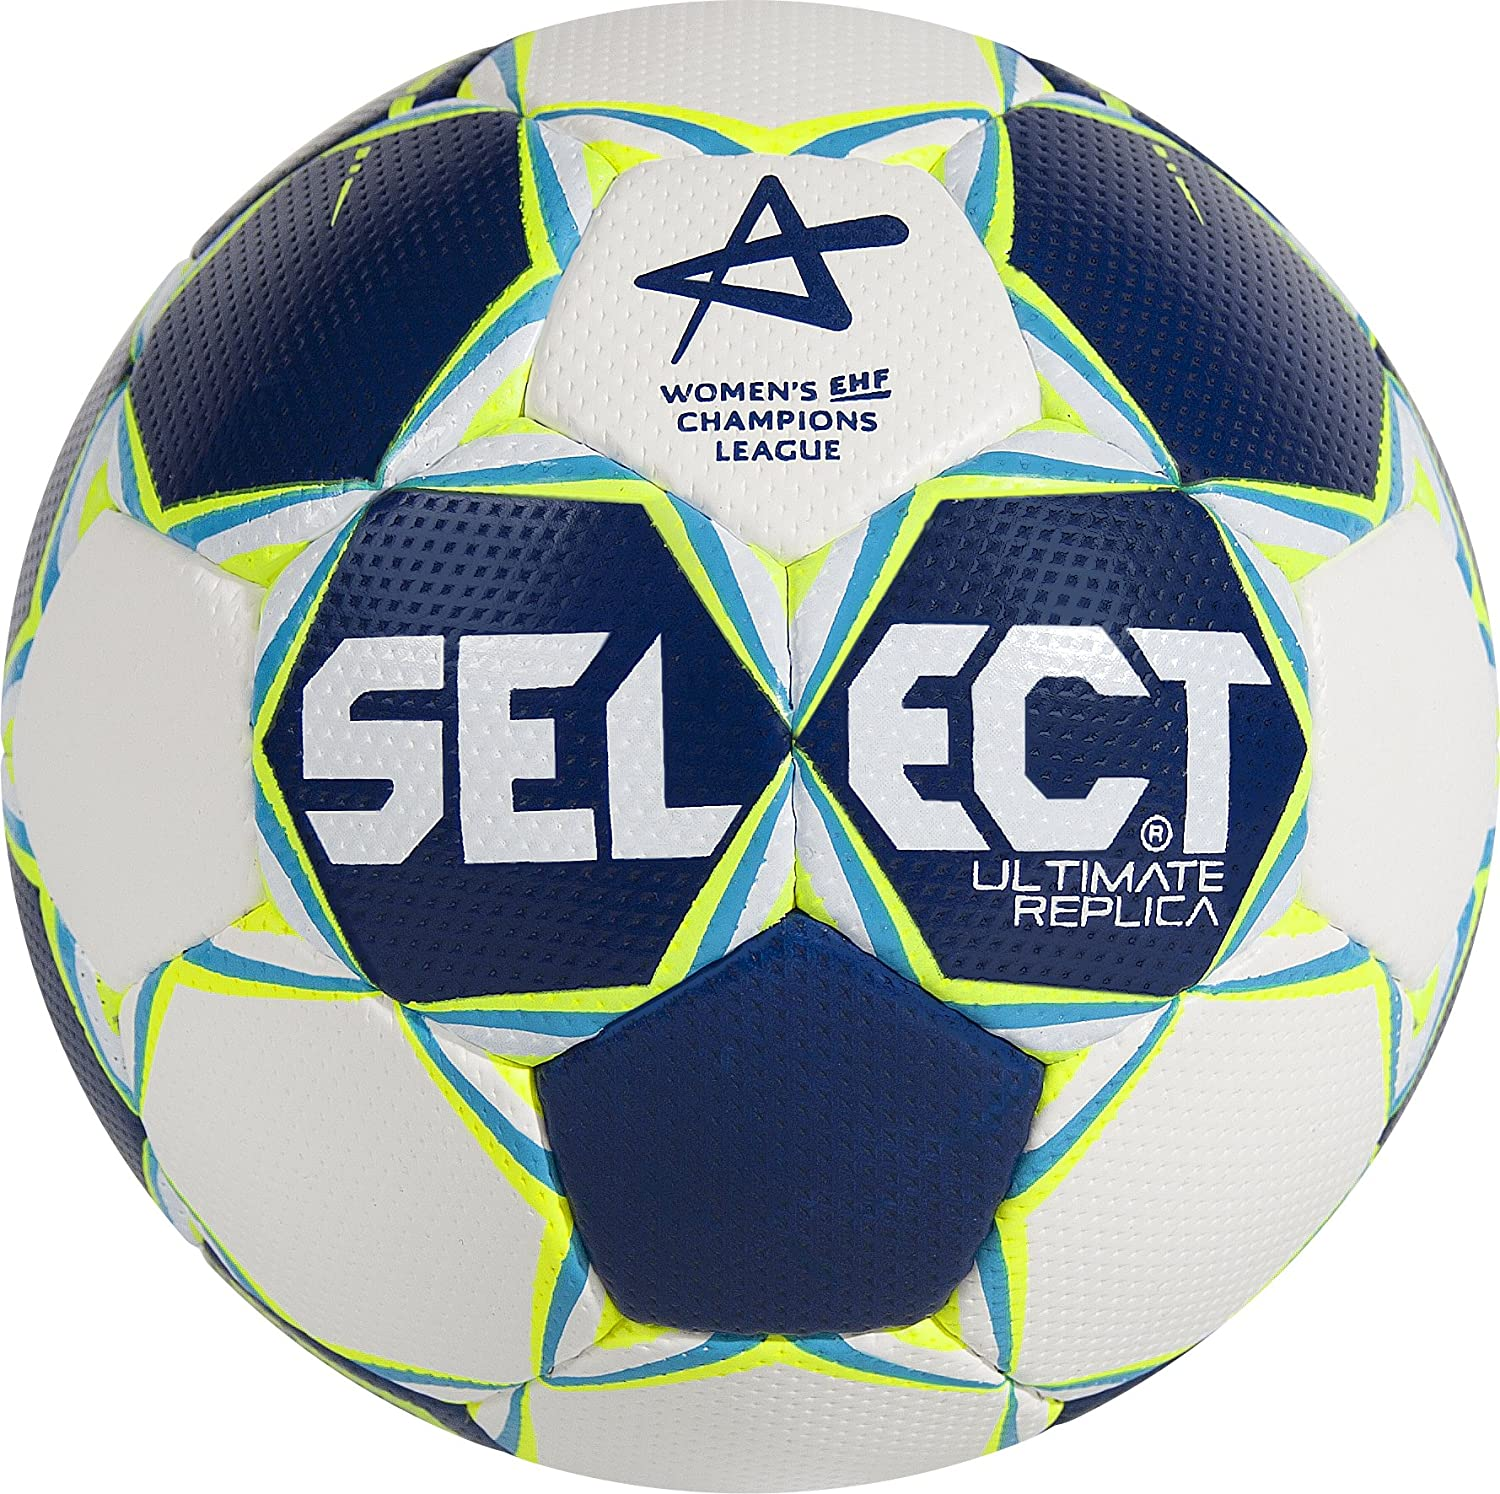 Select Ultimate Replica Champions League Match Bleu/Blanc/Jaune Fluo 2 1671854205